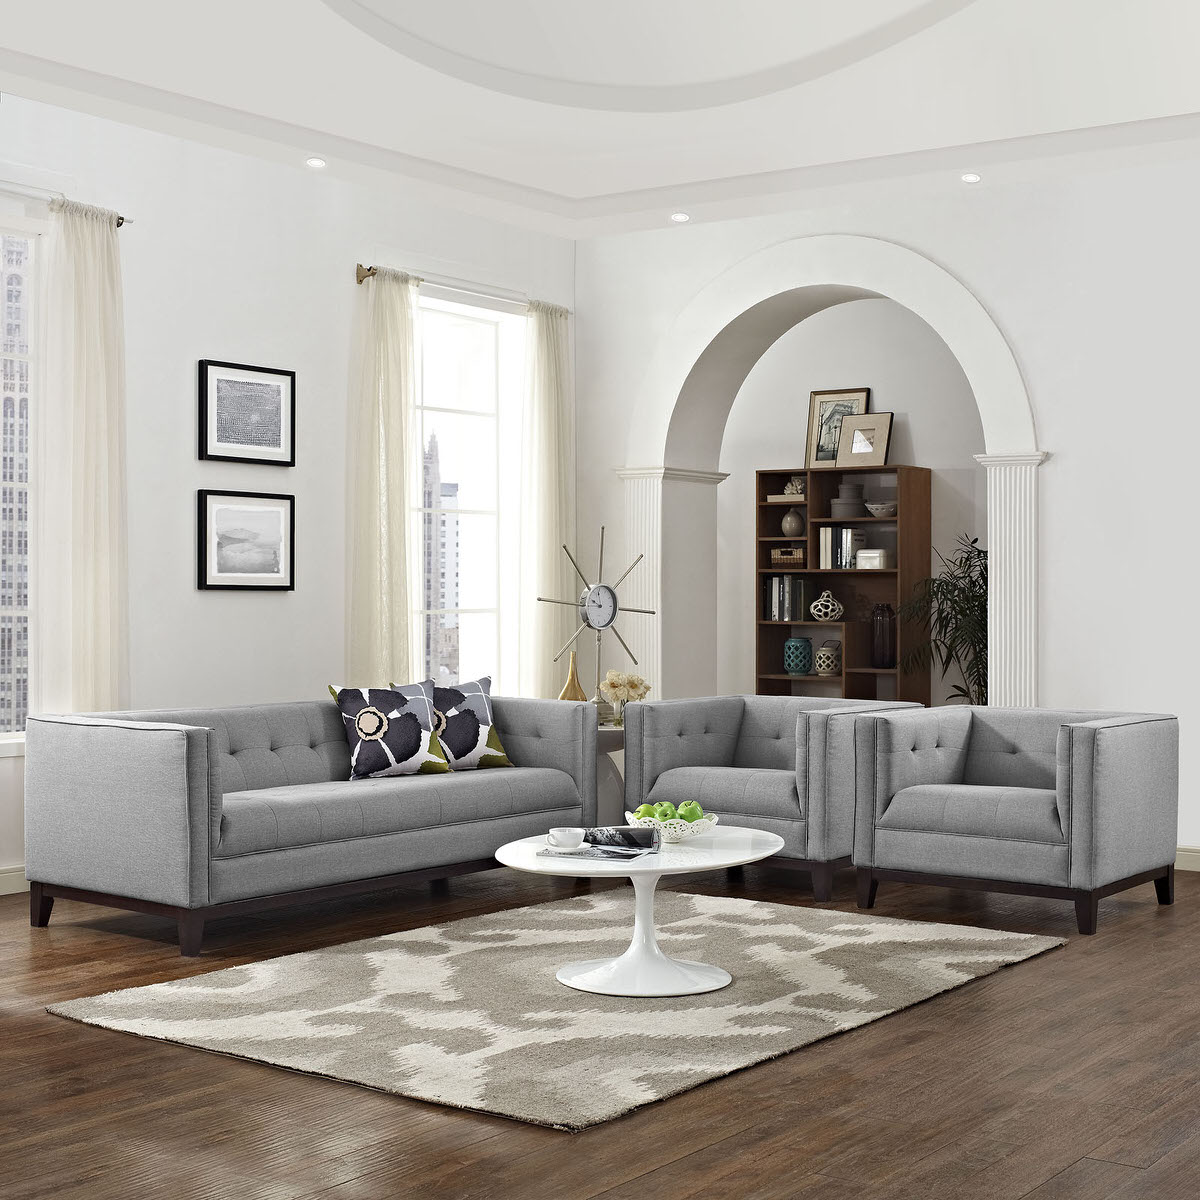 Serve Living Room Set Set of 3 Light Gray by Modern Living